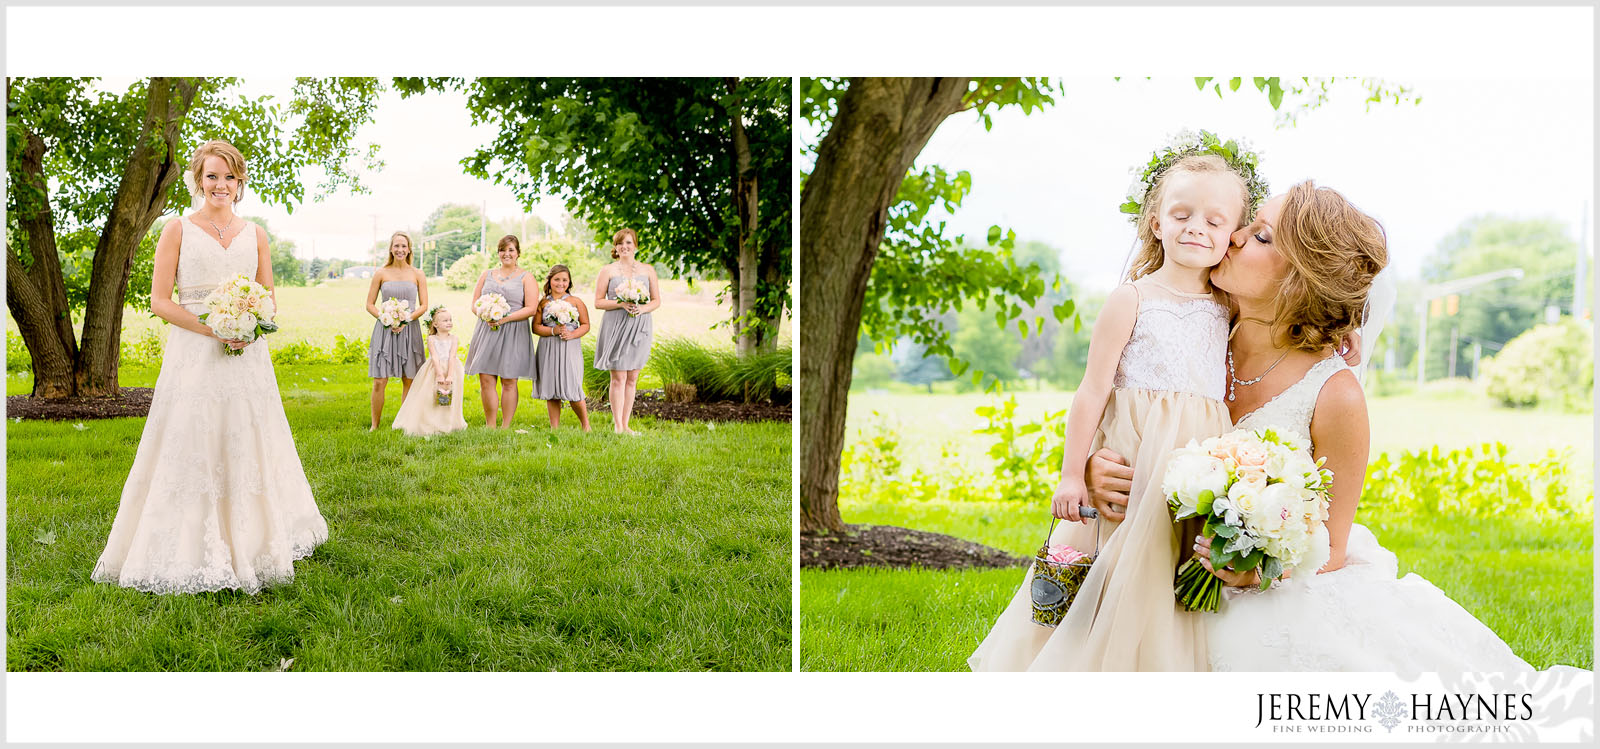 Randy + Lindsay  Mustard Seed Gardens Noblesville, IN Wedding Pictures 12.jpg